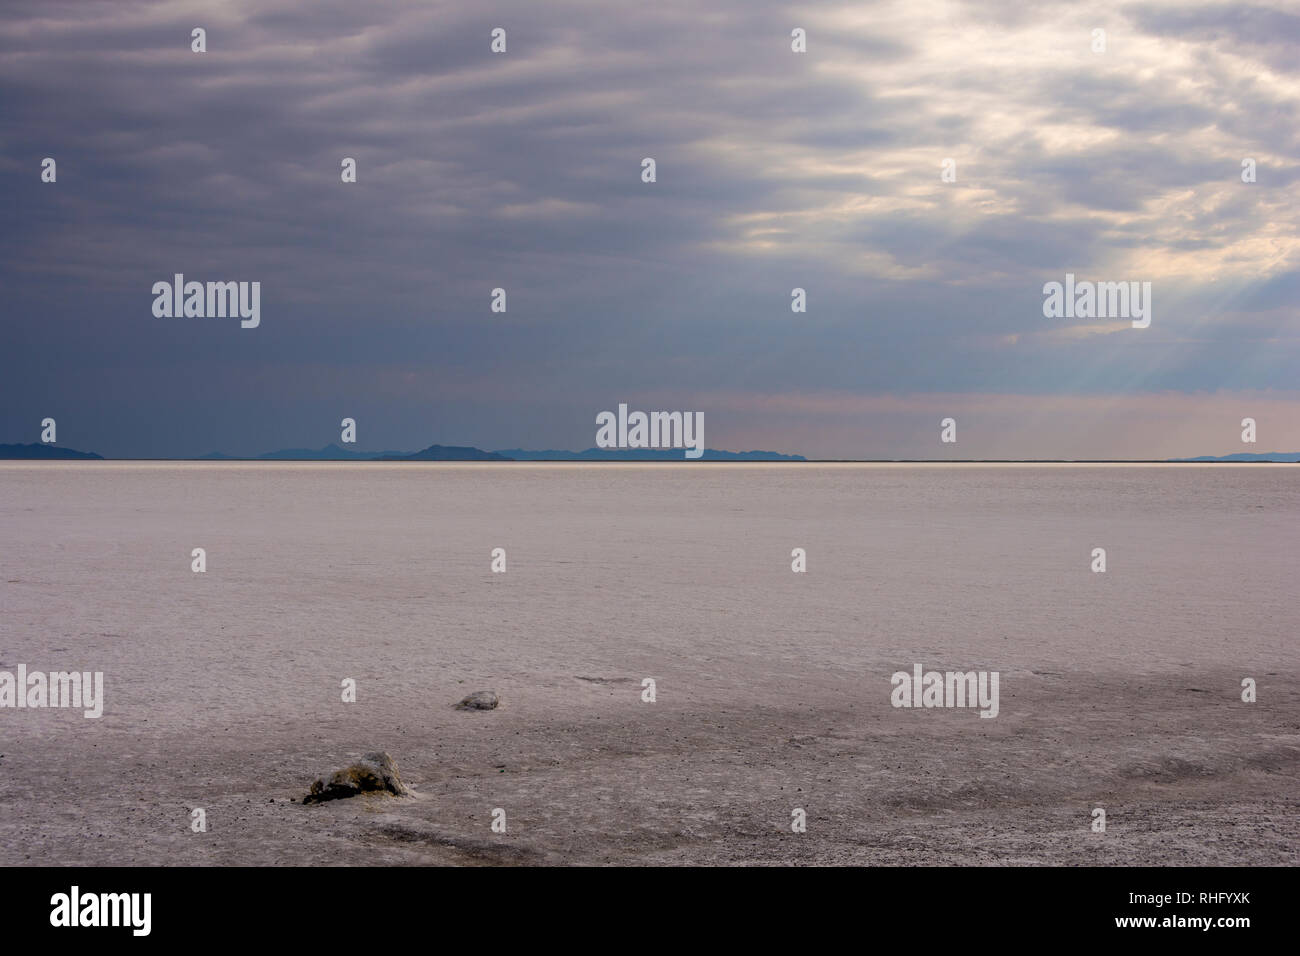 Clouds gathered over Bonneville Salt Flats in Utah, United States on a sunny day. Stock Photo